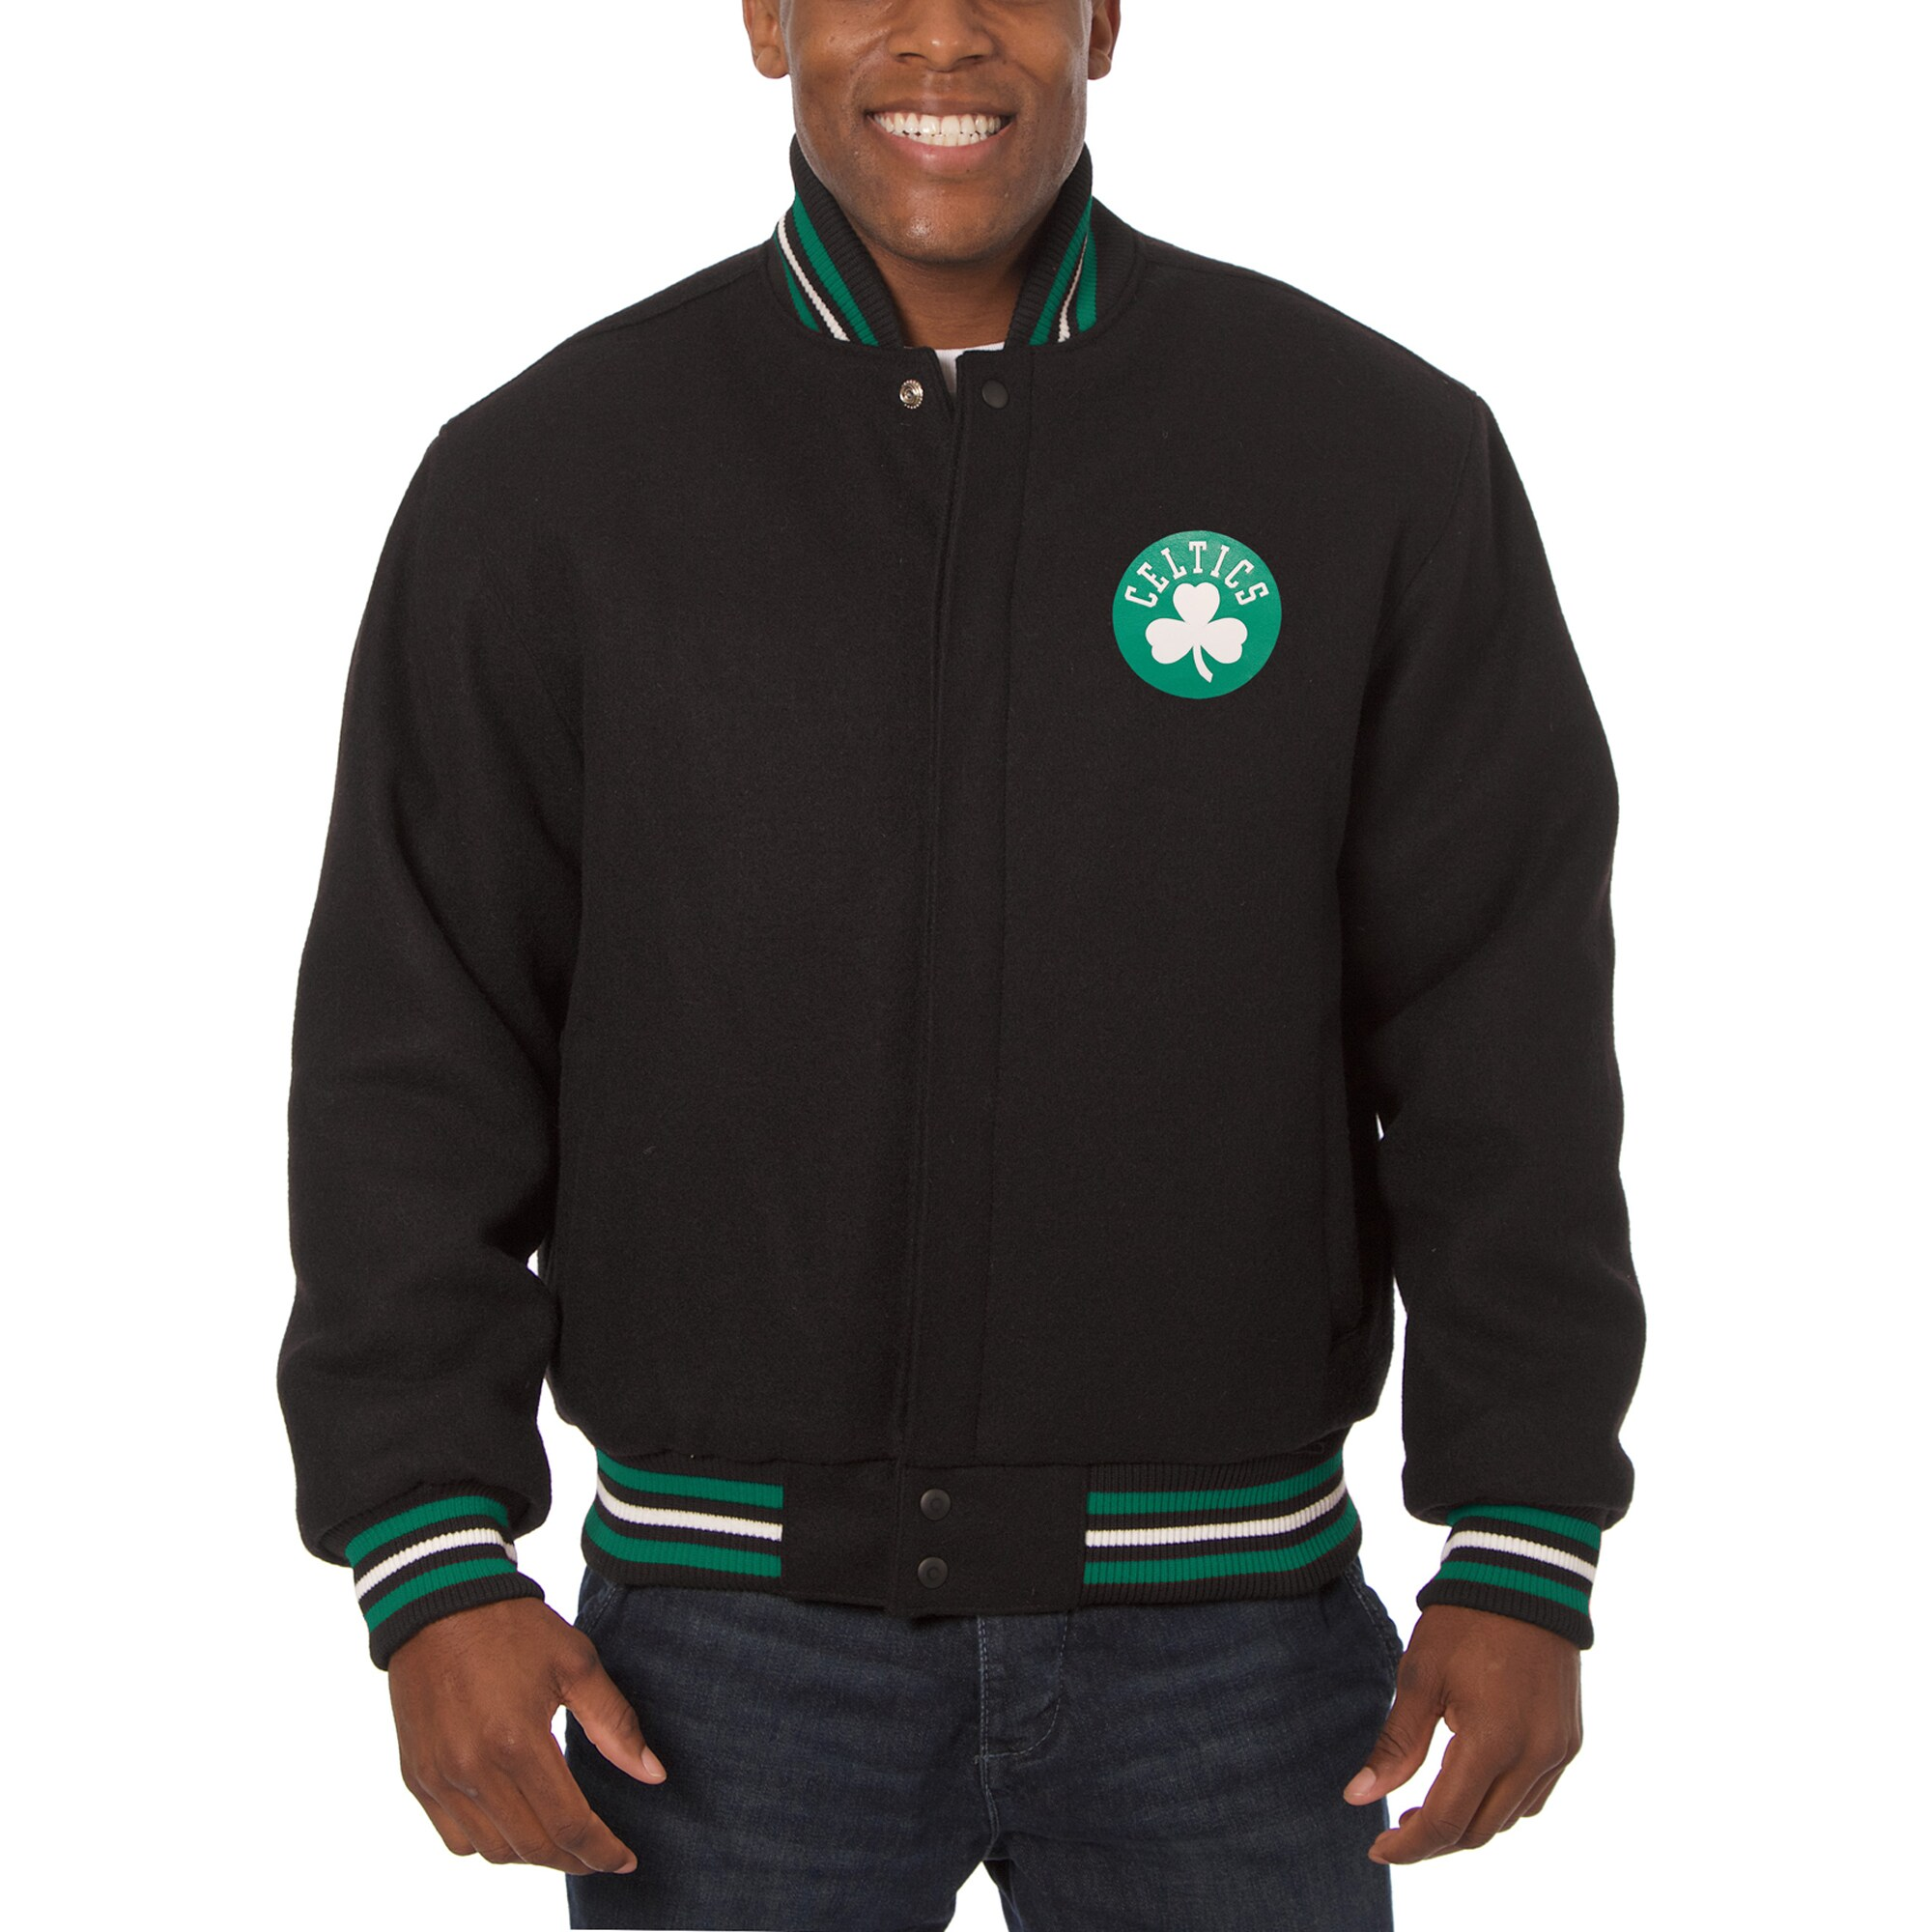 Boston Celtics JH Design Big & Tall All Wool Jacket with Leather Logo - Black